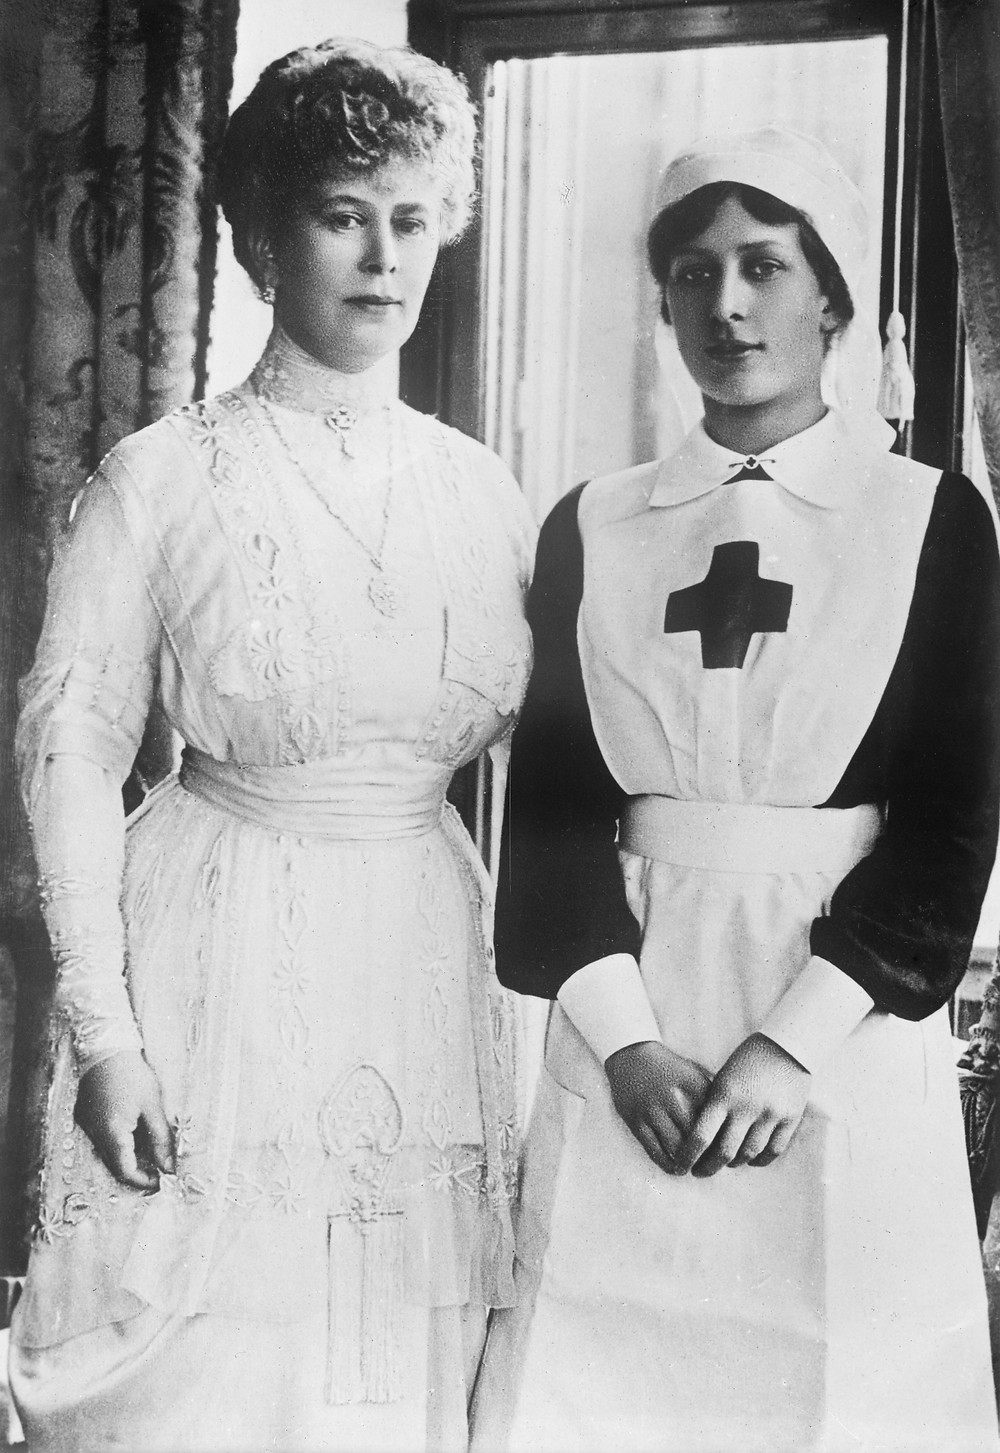 photograph of The Princess Mary (right) with her mother Queen Mary during the First World War. Royal family history, nursing, WWI, British monarchy